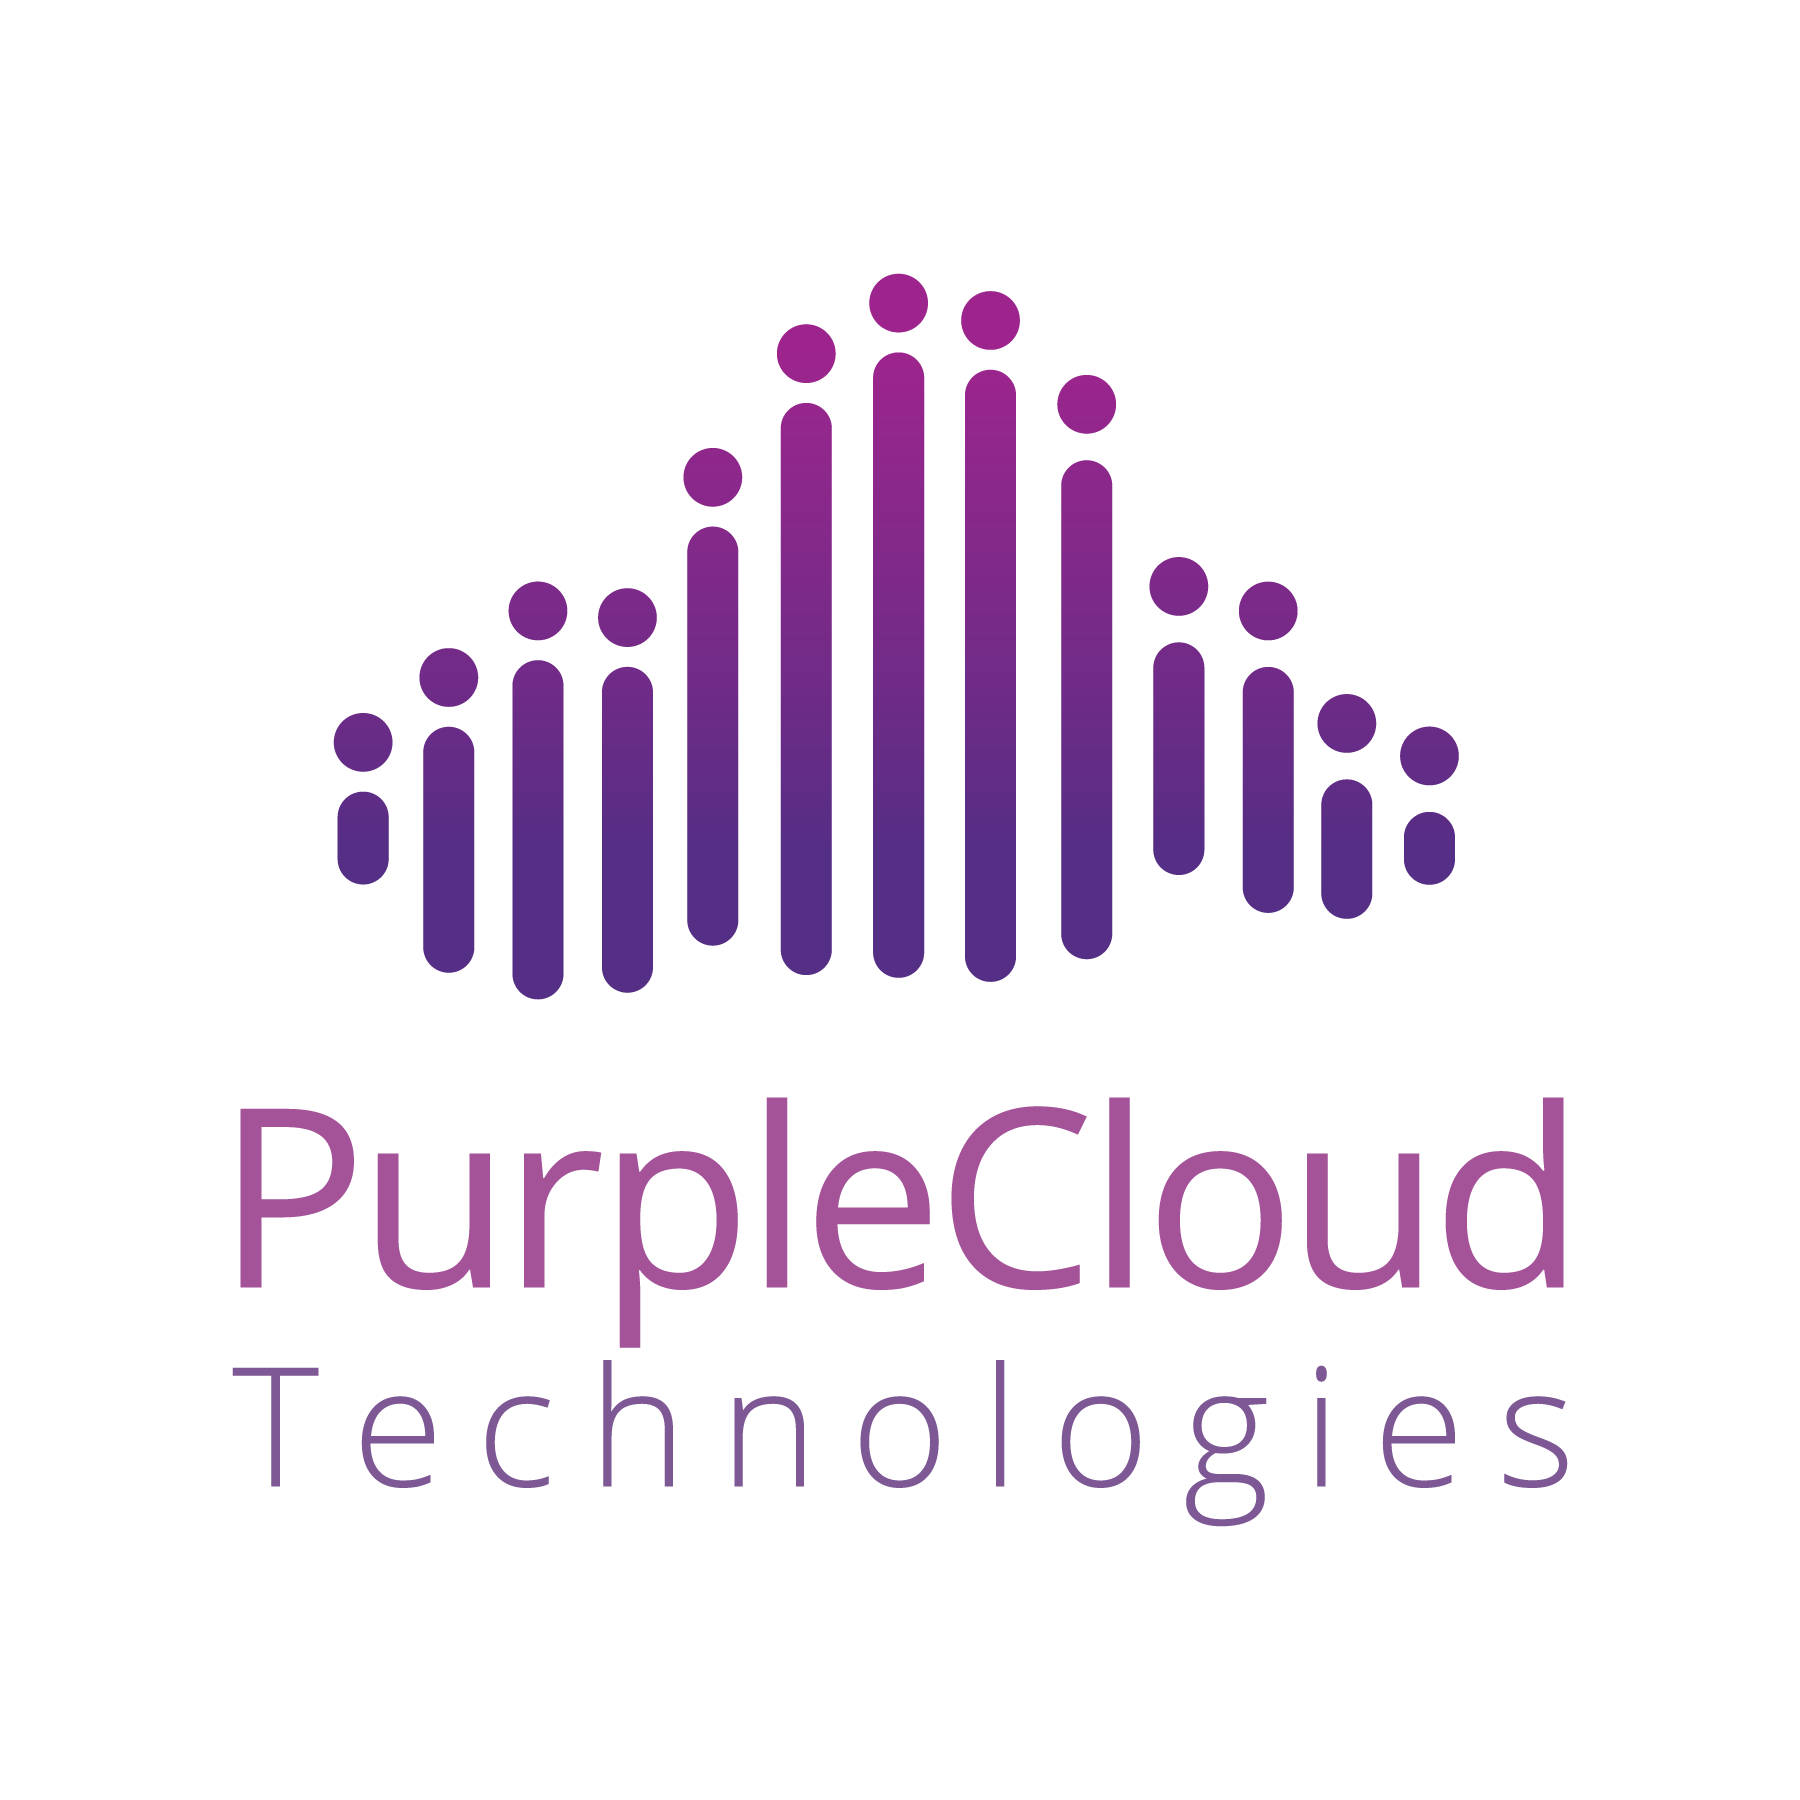 """purplecloud - Maestro PMS Integration with PurpleCloud Helps Solve the """"Labor Crunch"""" with Streamlined Housekeeping Services - Innovative Property Management Software Solutions Powering Hotels, Resorts & Multi‑Property Groups."""